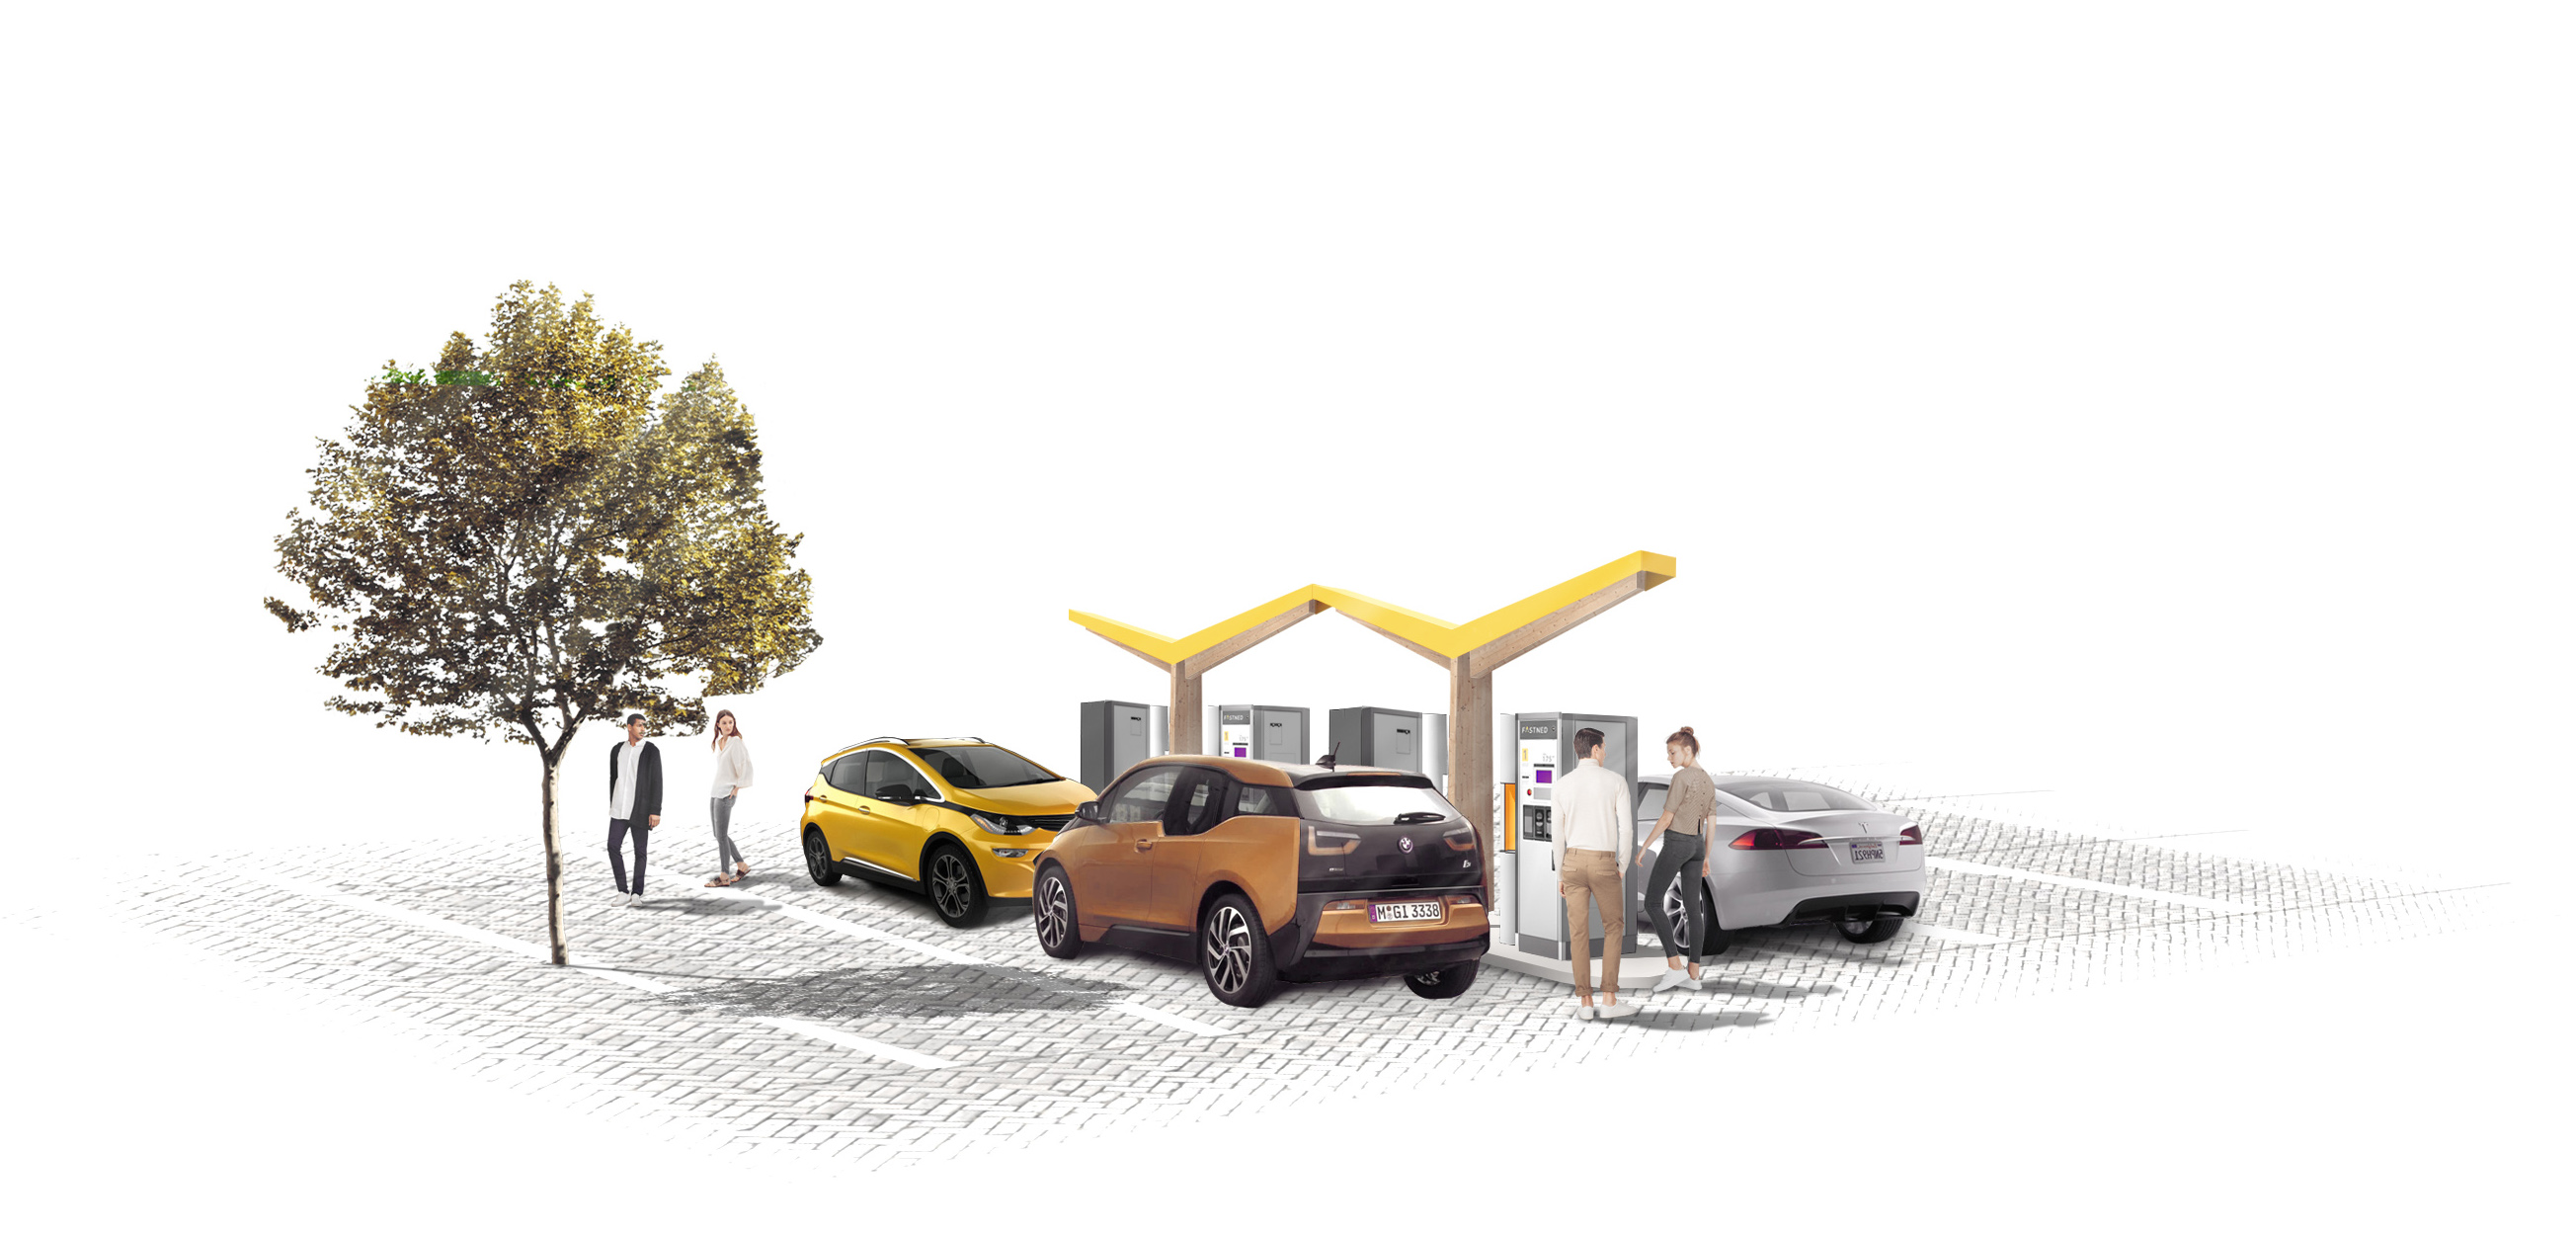 291782 render fastned fast%20charging%20supermarkets rewe f2c435 original 1538996419